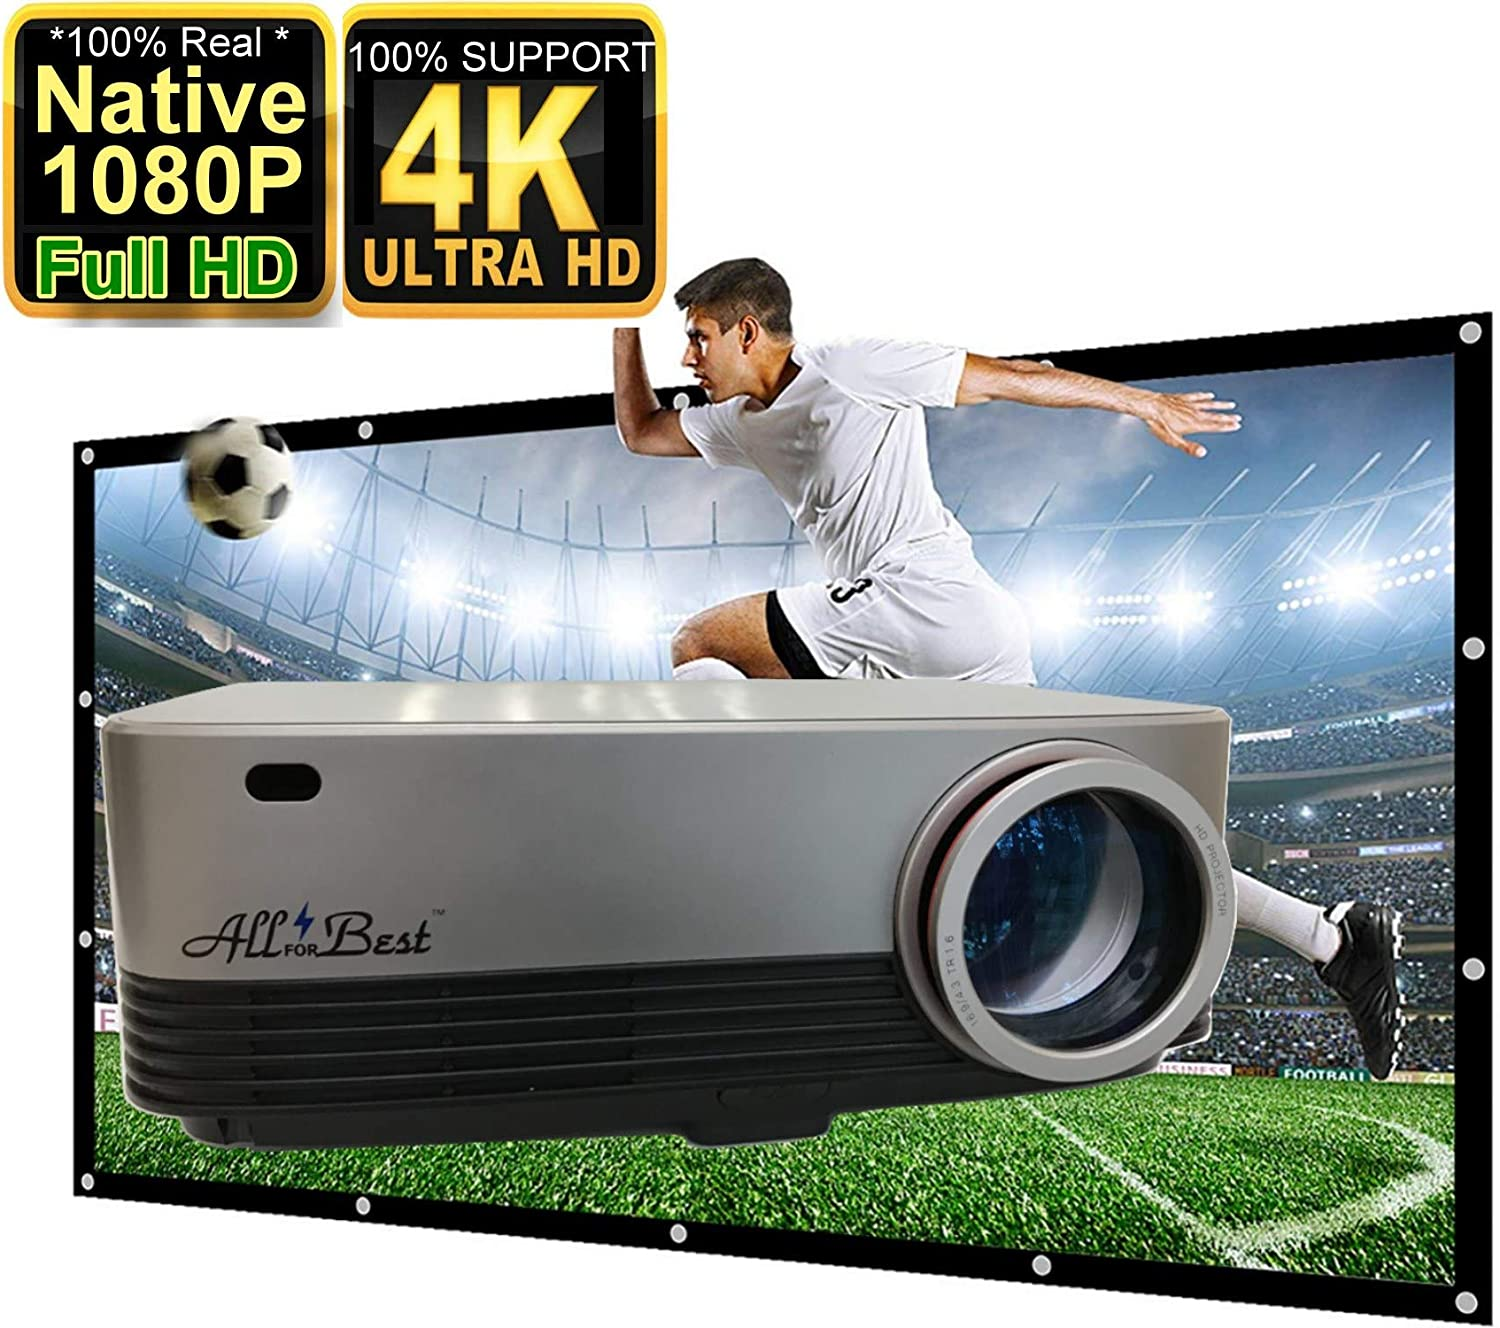 "AllForBest Full HD LED, Native 1080P Projector, Support 4K,5500 Lux,Support 300"" Display, HDMI VGA USB, Compatible with TV Box Xbox Playstation Laptop iPhone Android,Perfect for Home Theater & PPT"